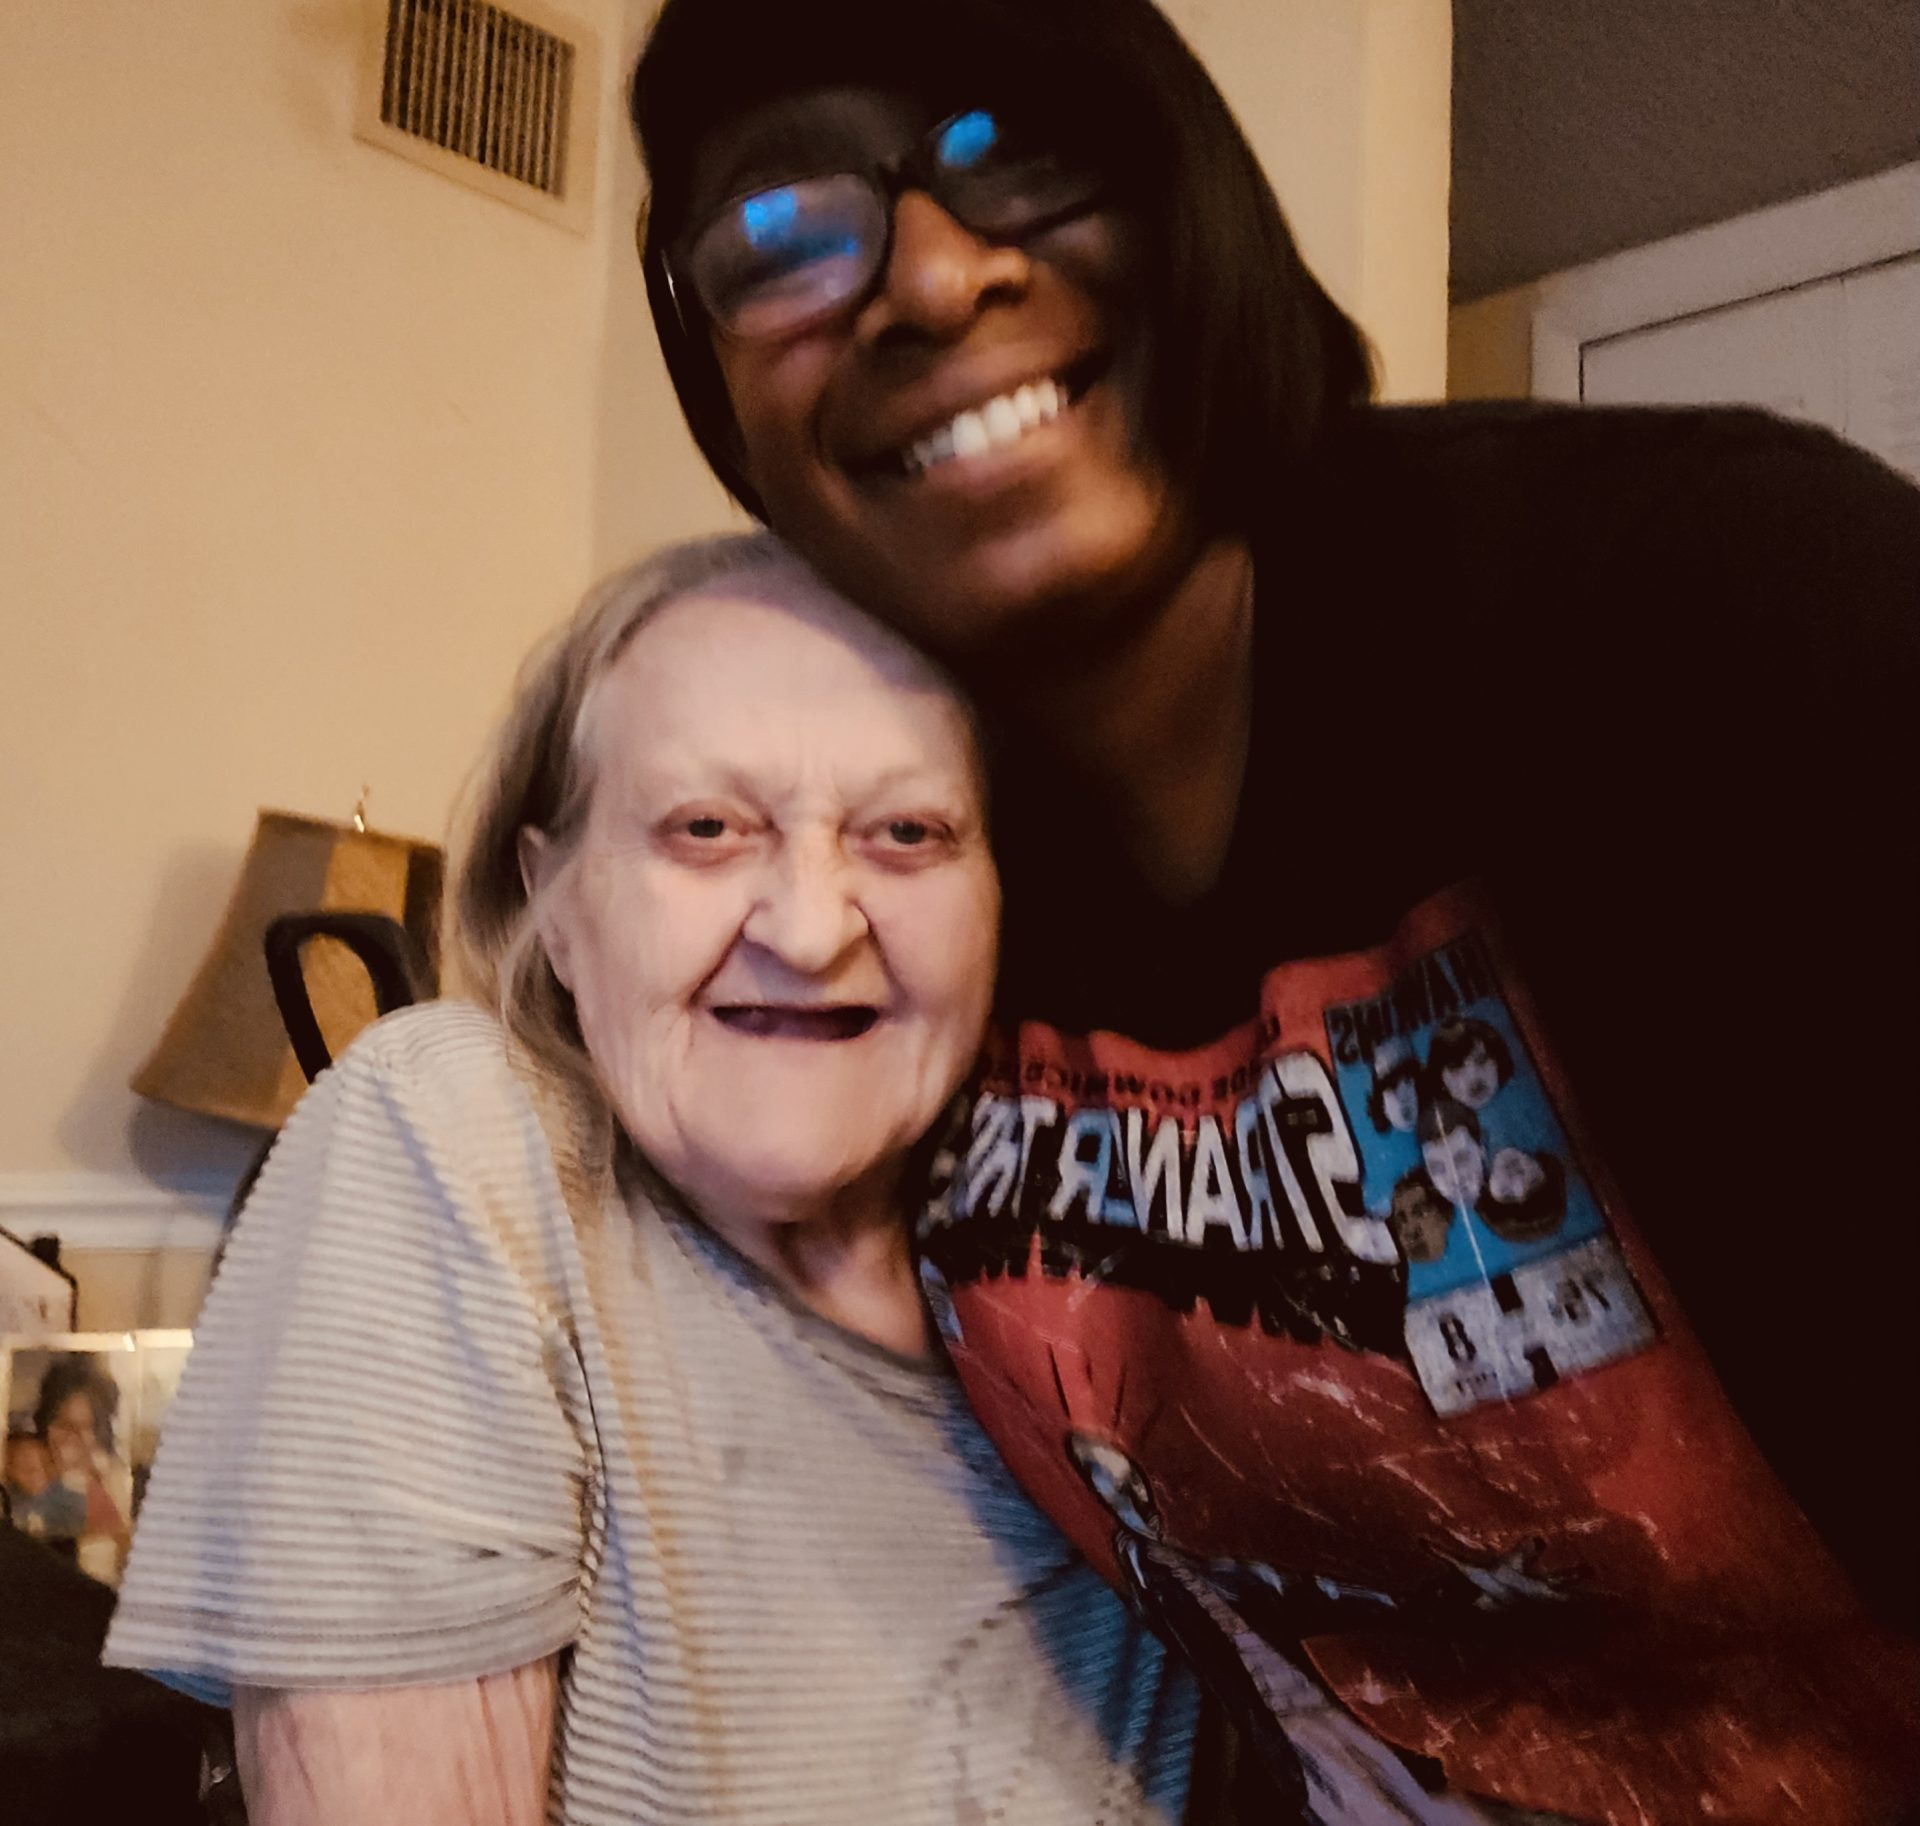 Our last photo together… nothing but smiles ❤️ Rest in Heaven Ma love you very much!